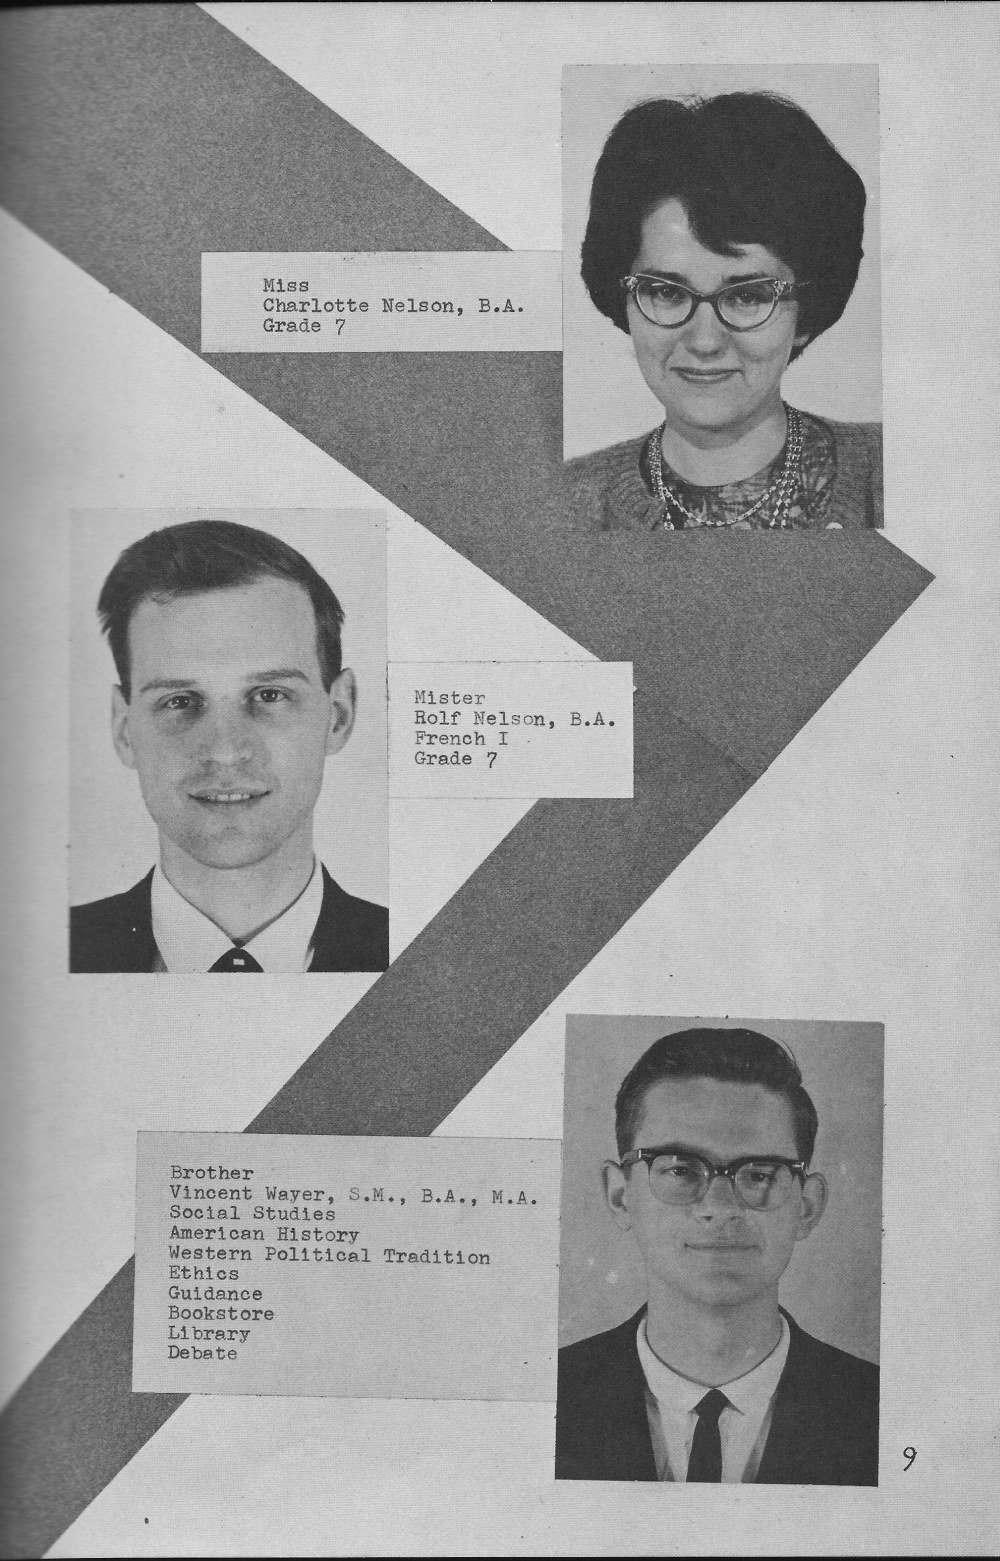 Faculty Page 3 for  Villa Saint Jean International School  1964 Yearbook Le Chamois